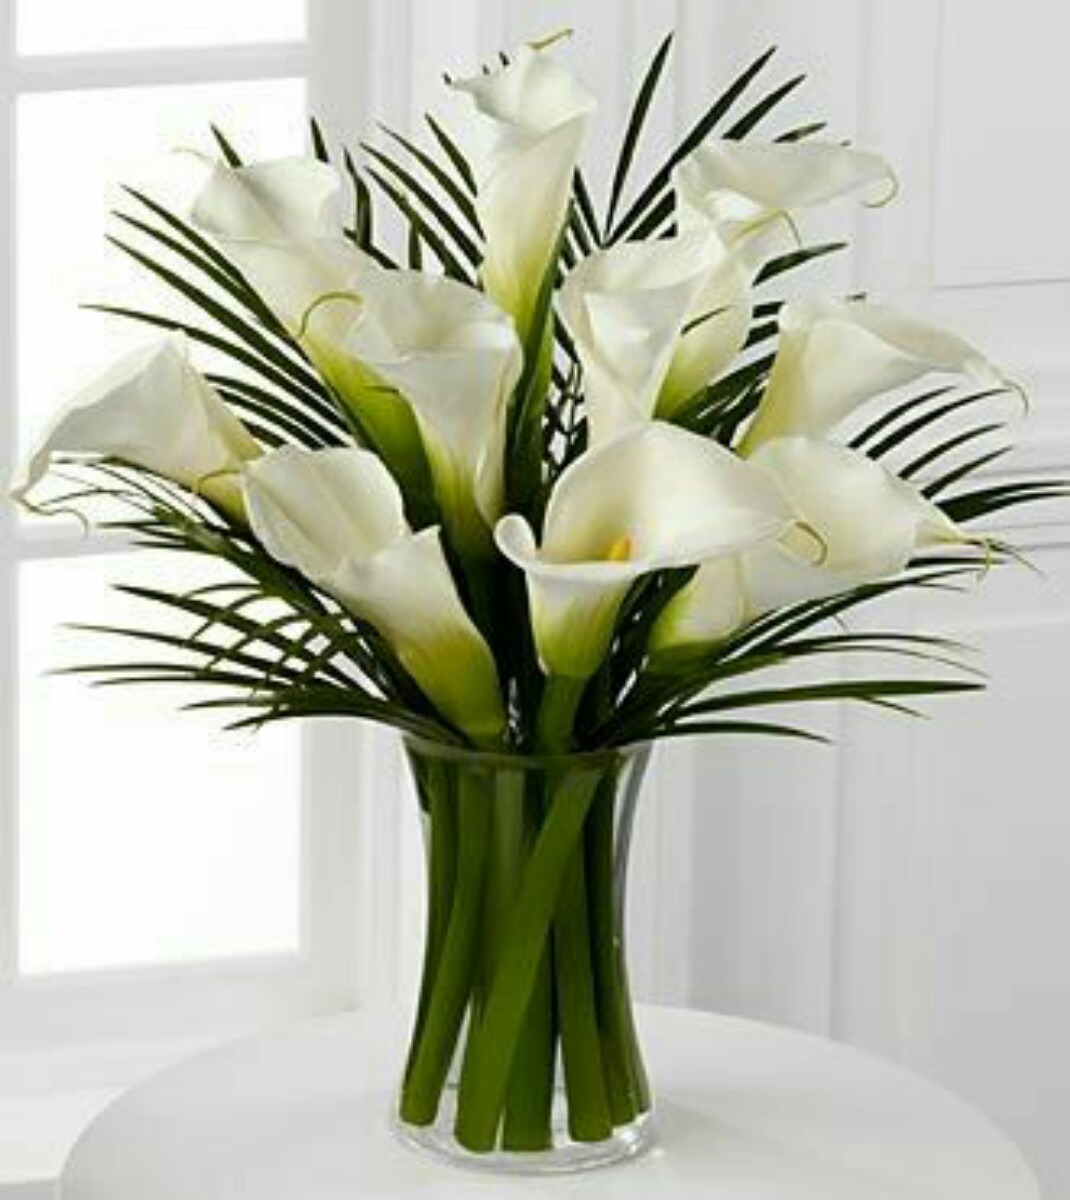 flower vase green with Mlm 550319156 Diferentes Floreros De Vidrio Grandes  Jm on Pink Lily Bouquet as well Watch additionally Matisse The Joy Of Things likewise Monstera Leaves Tropical Greenery likewise 25 Floating Flowers And Candles Centerpieces.